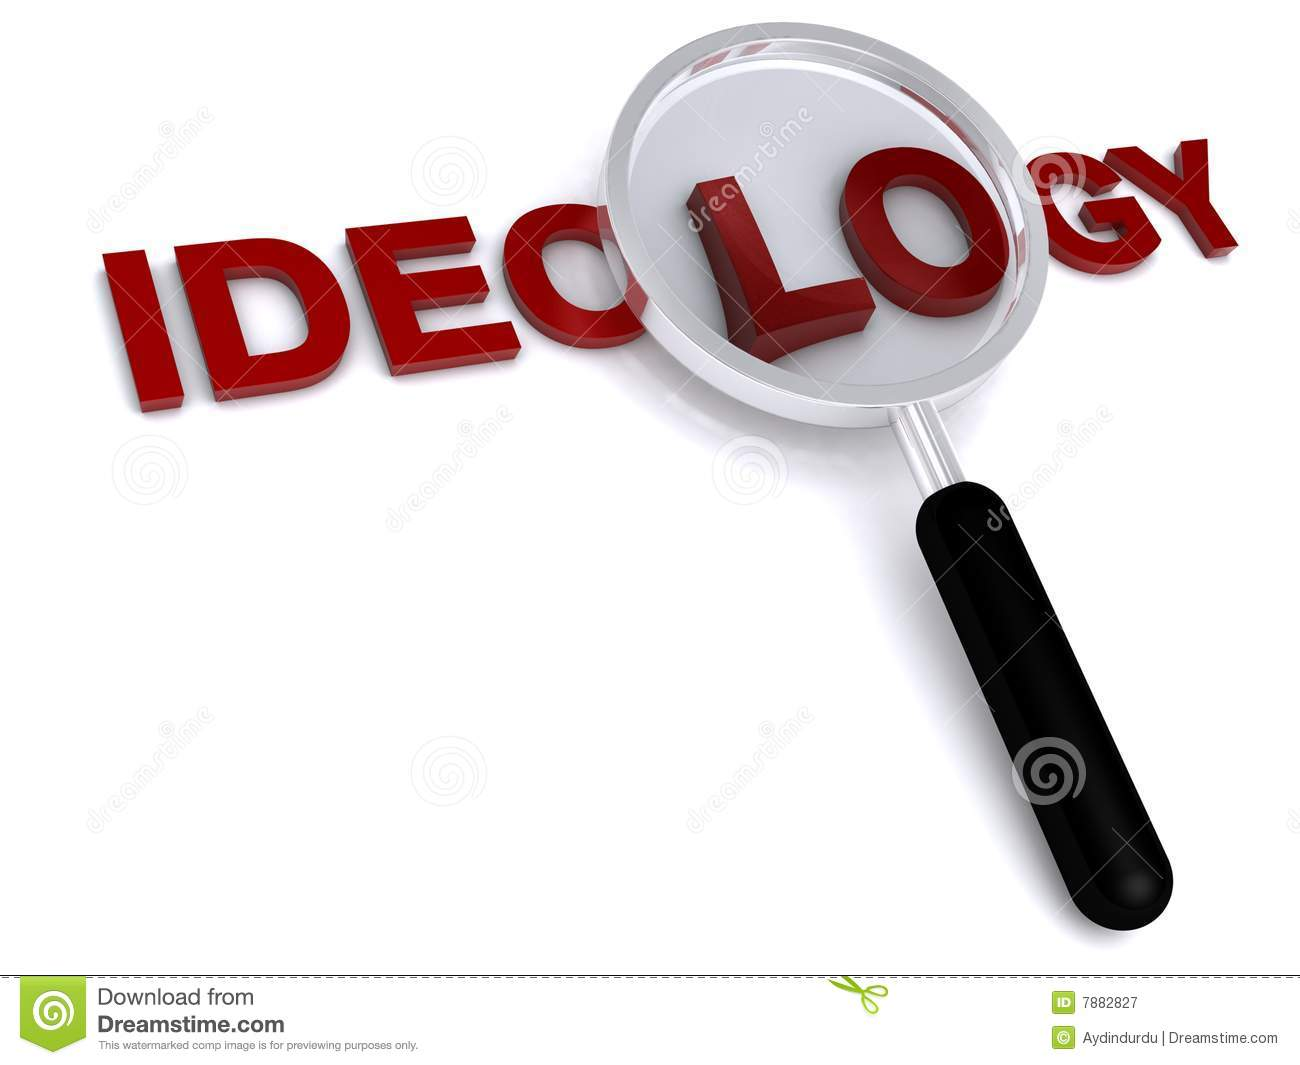 Clipart Pictures Iceberg Ideology Royalty Free Stock Photography Image 7882827